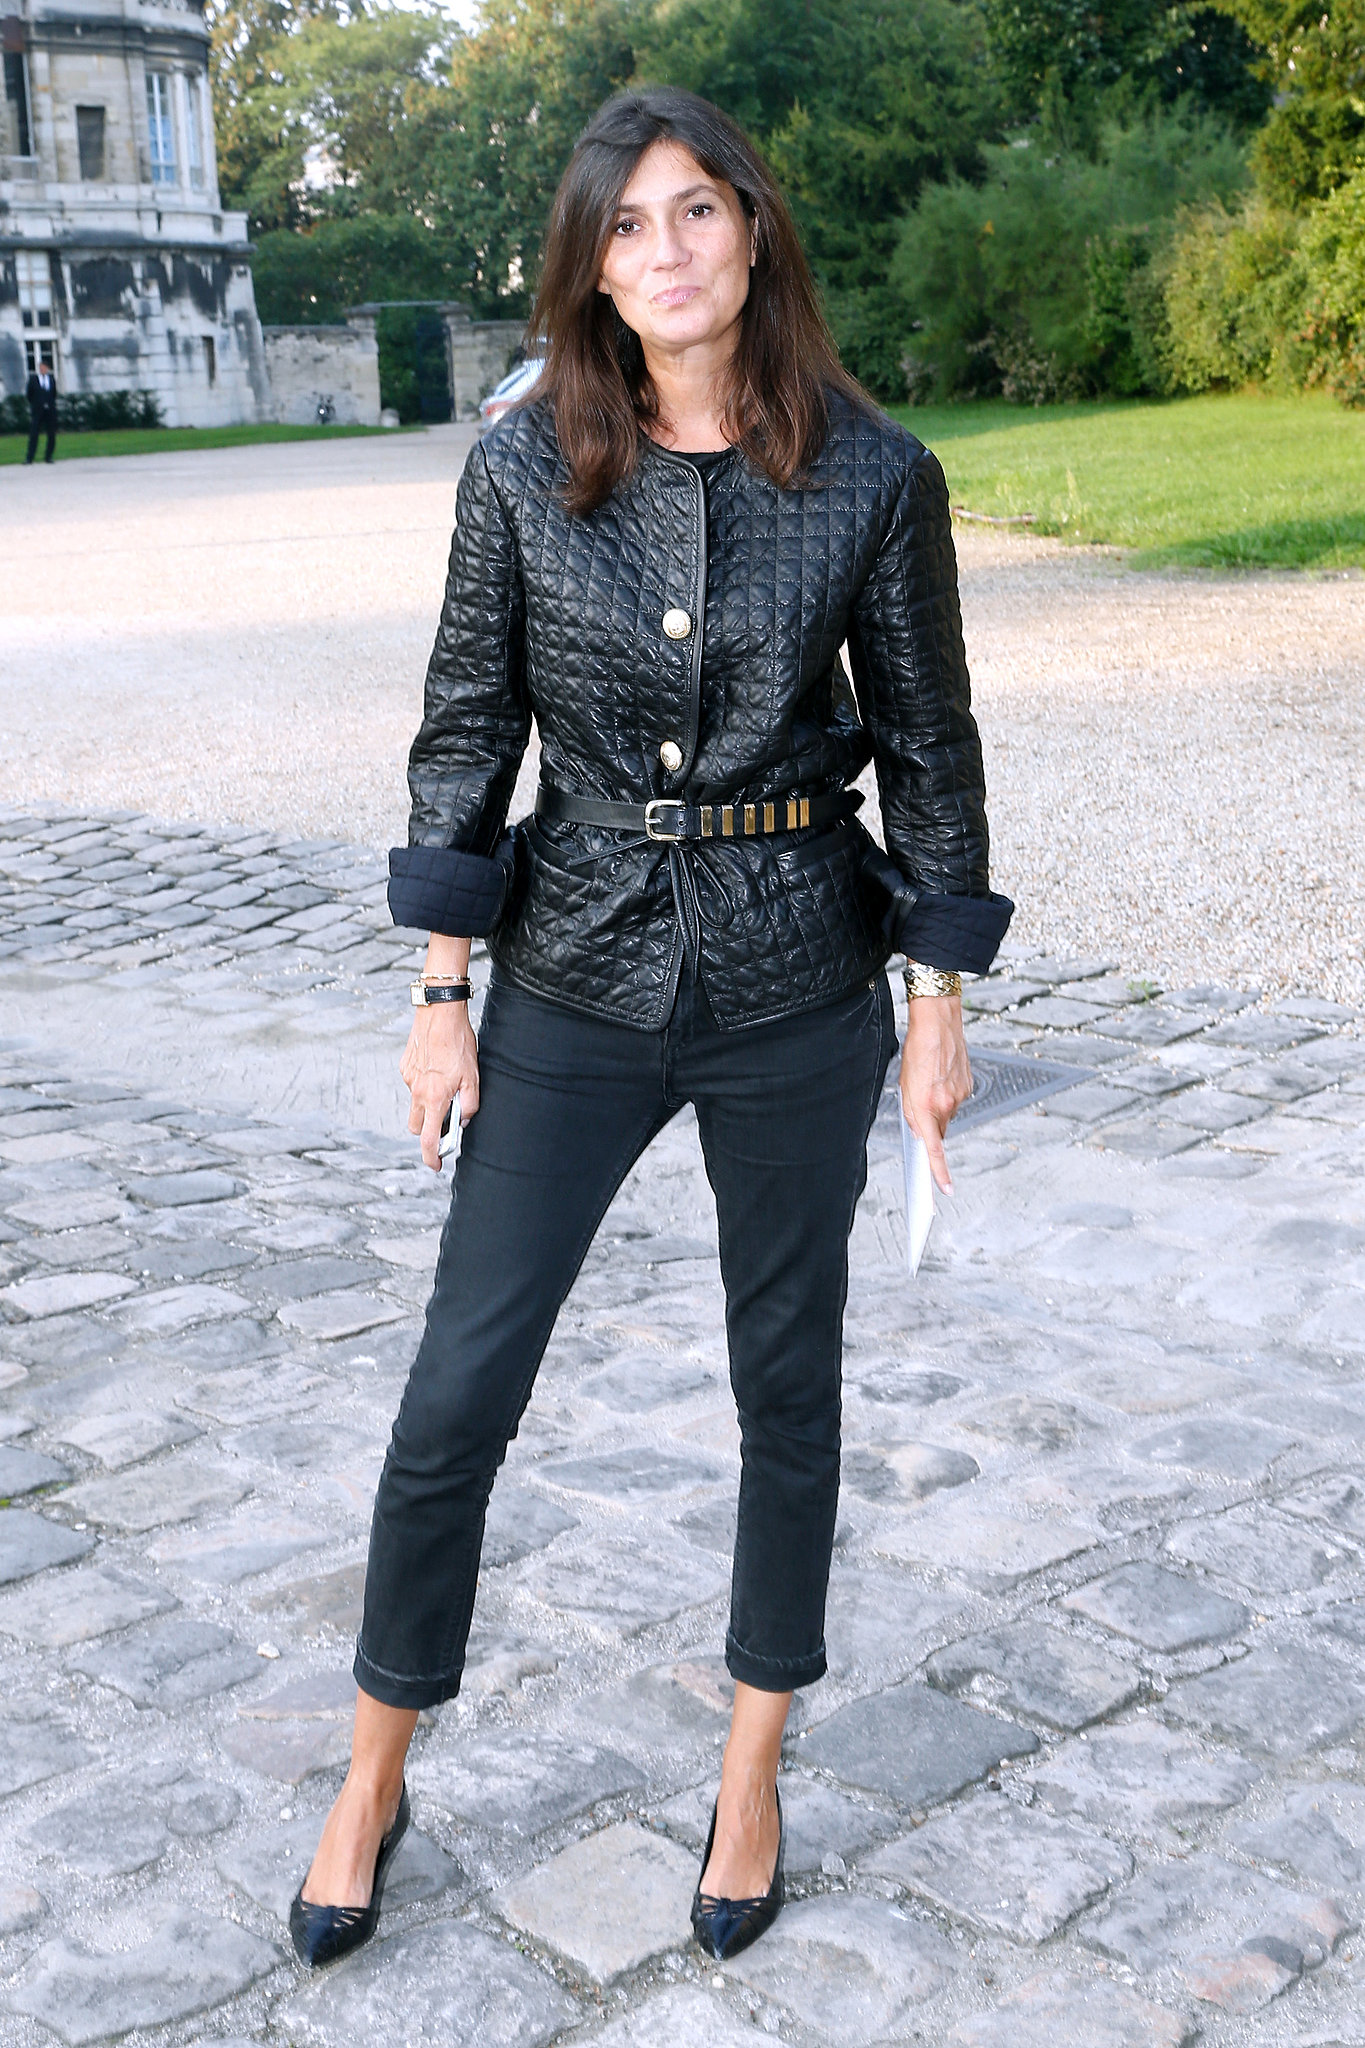 Emmanuelle-Alt-stood-out-all-black-sidewalk-before